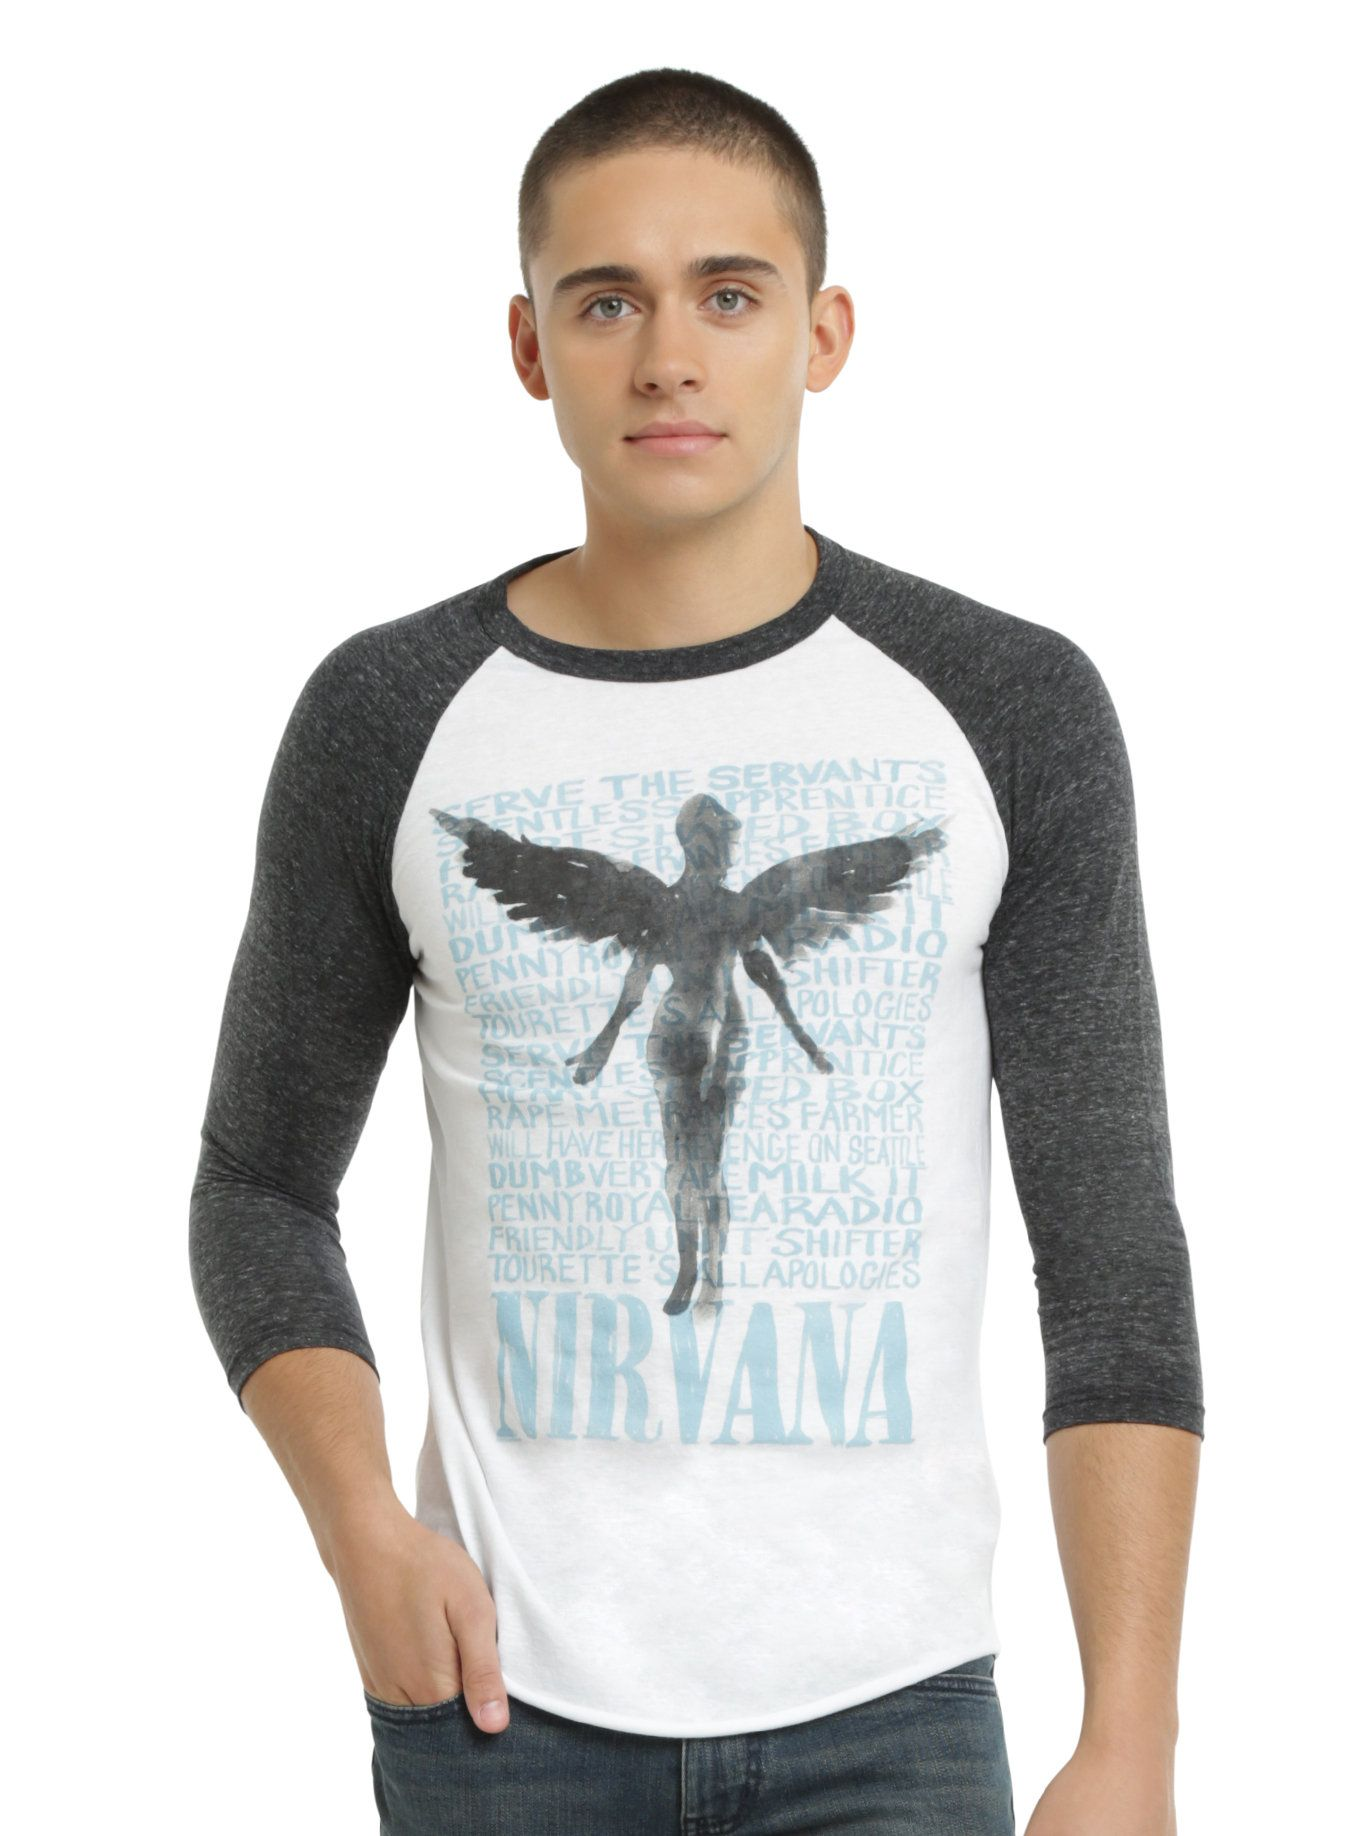 """<p>Raglan style shirt from Nirvana with a large <i>In Utero</i> inspired design that features an ink wash angel & album track listing design on front. Charcoal heather sleeves. White body.</p>  <ul>  <li style=""""LIST-STYLE-POSITION: outside !important; LIST-STYLE-TYPE: disc !important"""">50% cotton; 50% polyester</li>  <li style=""""LIST-STYLE-POSITION: outside !important; LIST-STYLE-TYPE: disc !important&q..."""